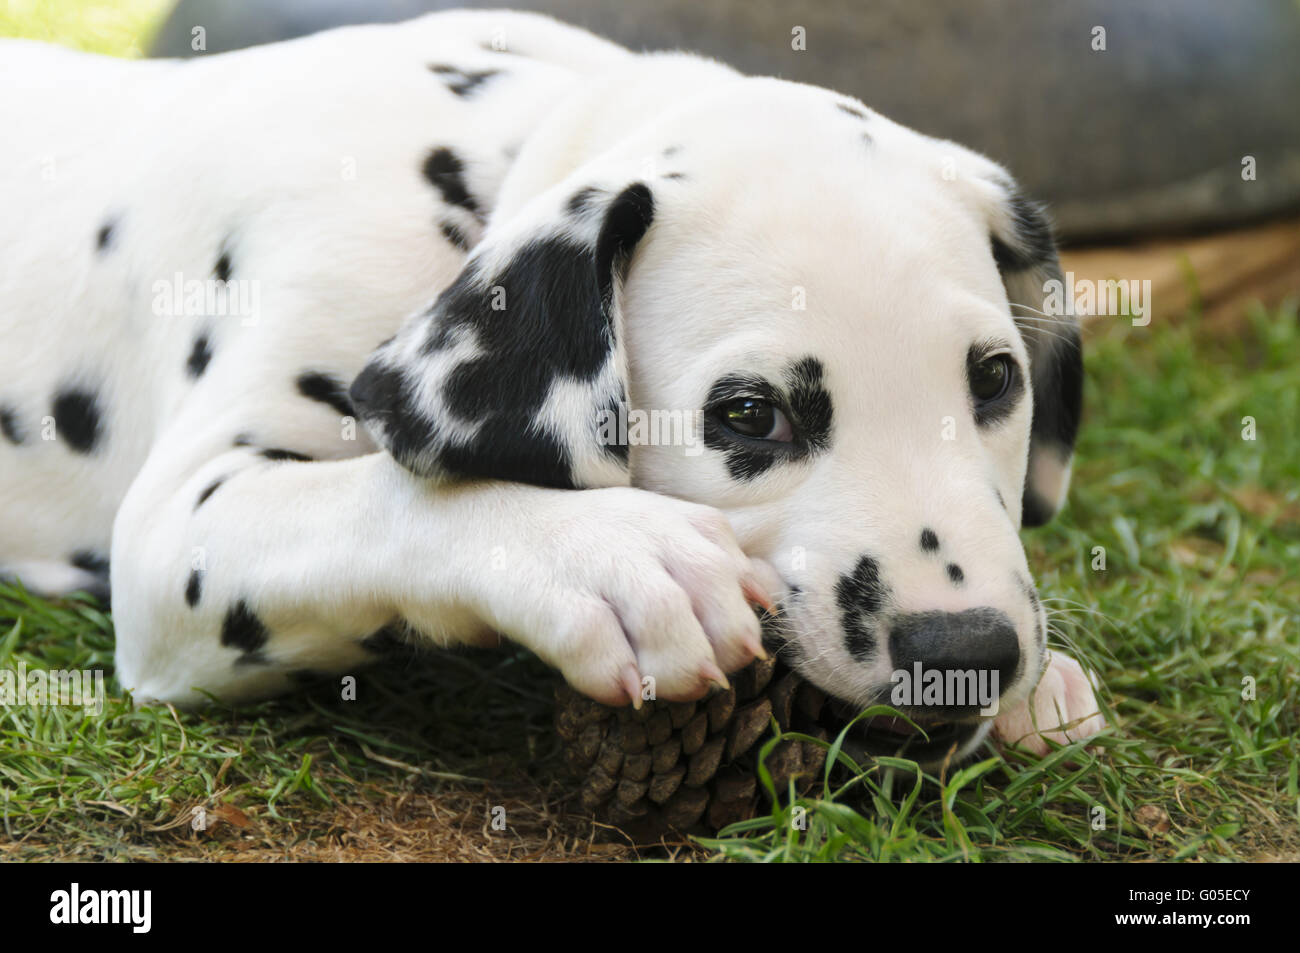 Dalmatian puppy, seven weeks old, portrait - Stock Image